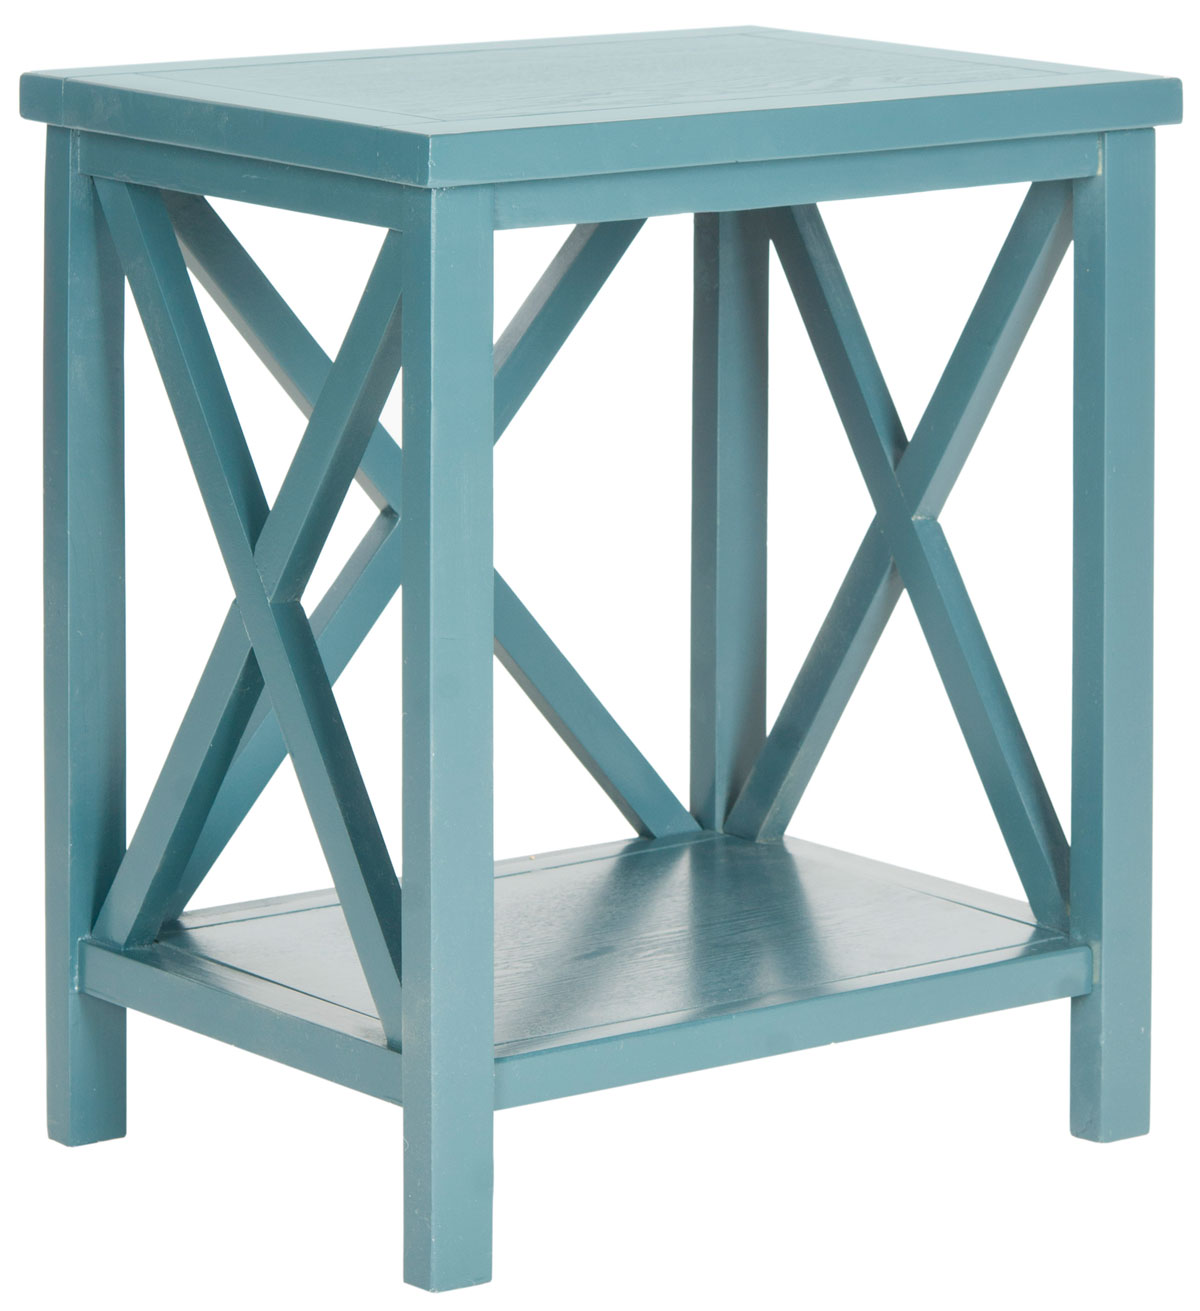 cheerful blue accent table interesting with stylish wilshire navy trendy design ideas tables storage furniture safavieh target hourglass outdoor shade structures farmhouse style